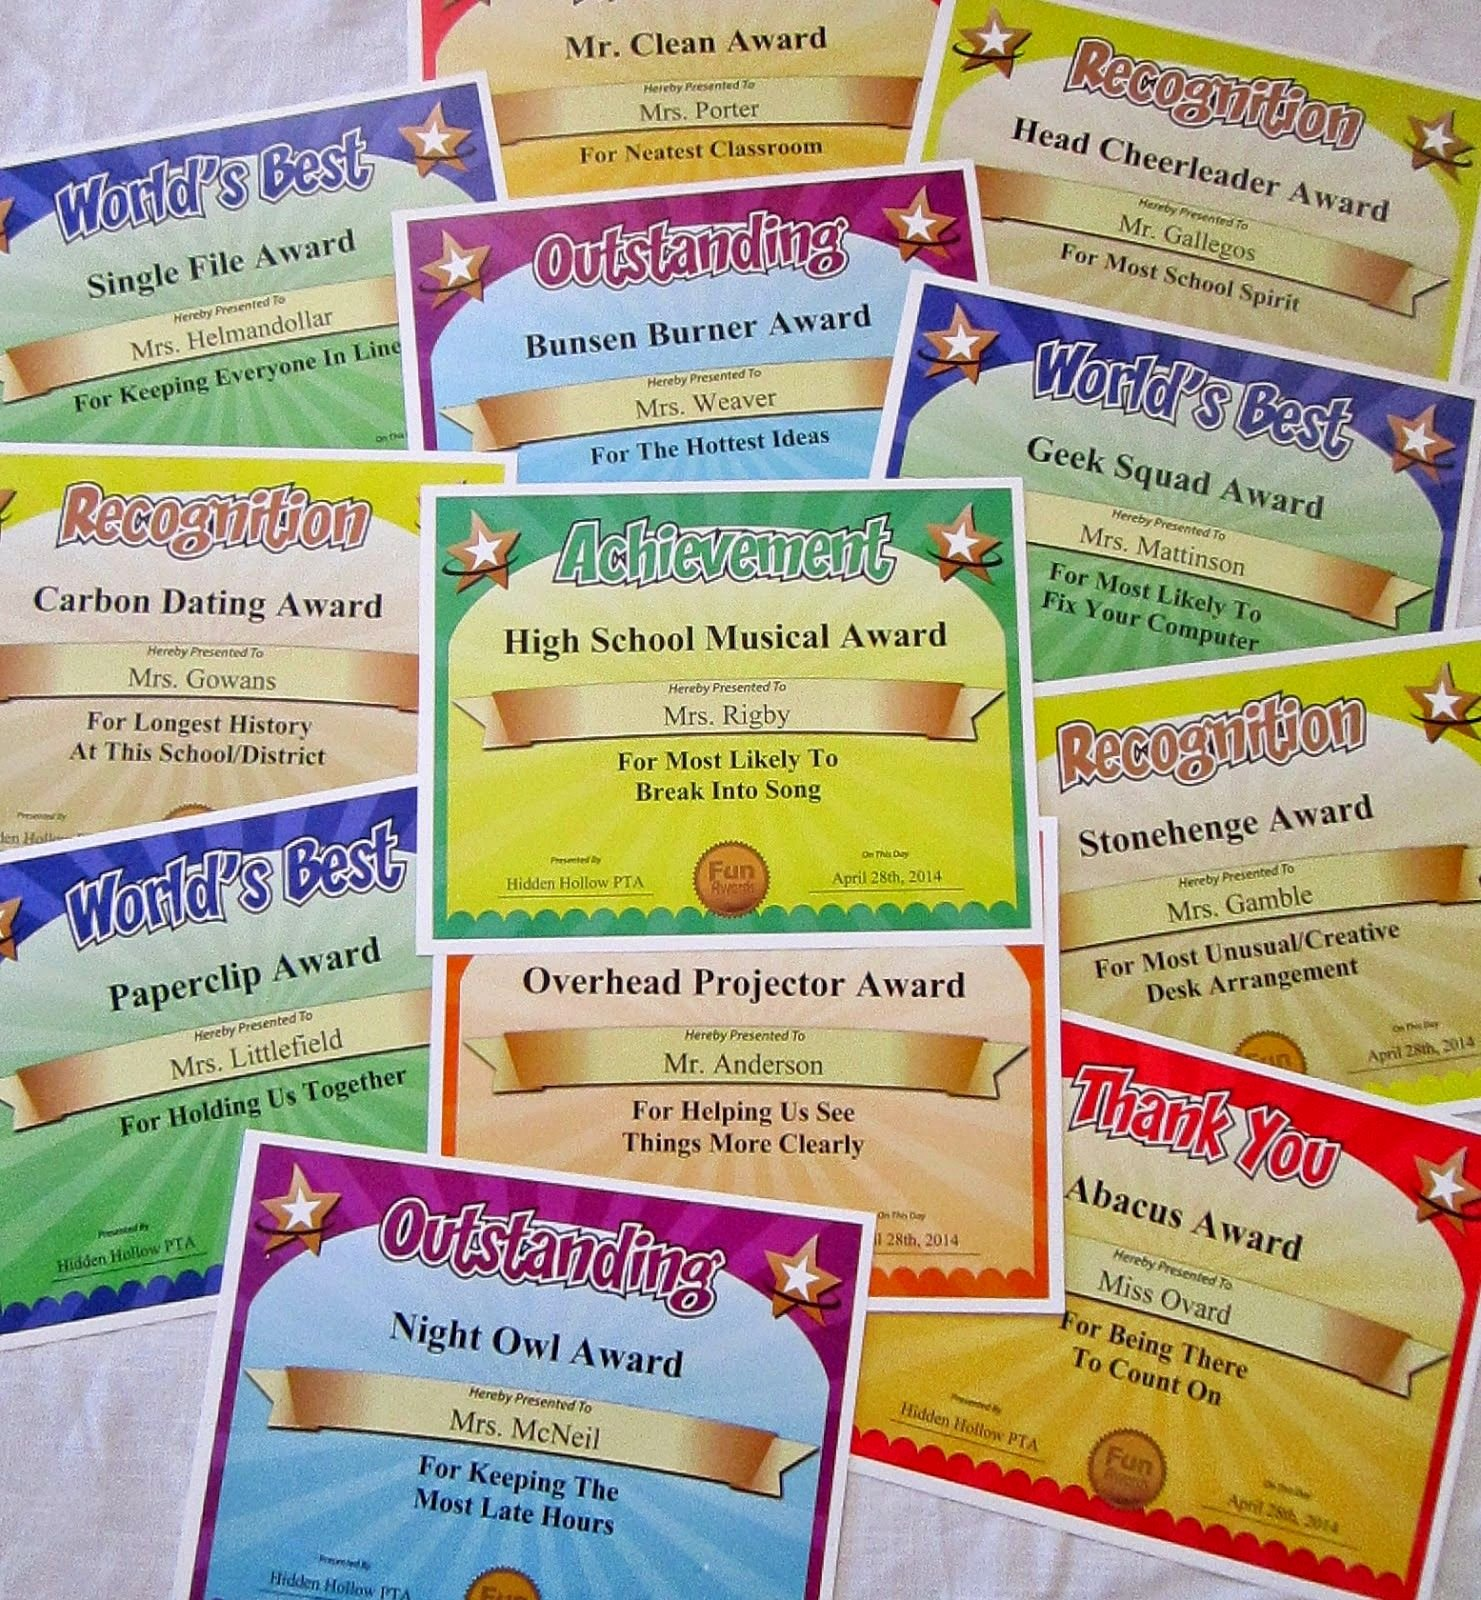 Award Titles for Students New From 101 Funny Teacher Awards by Larry Weaver